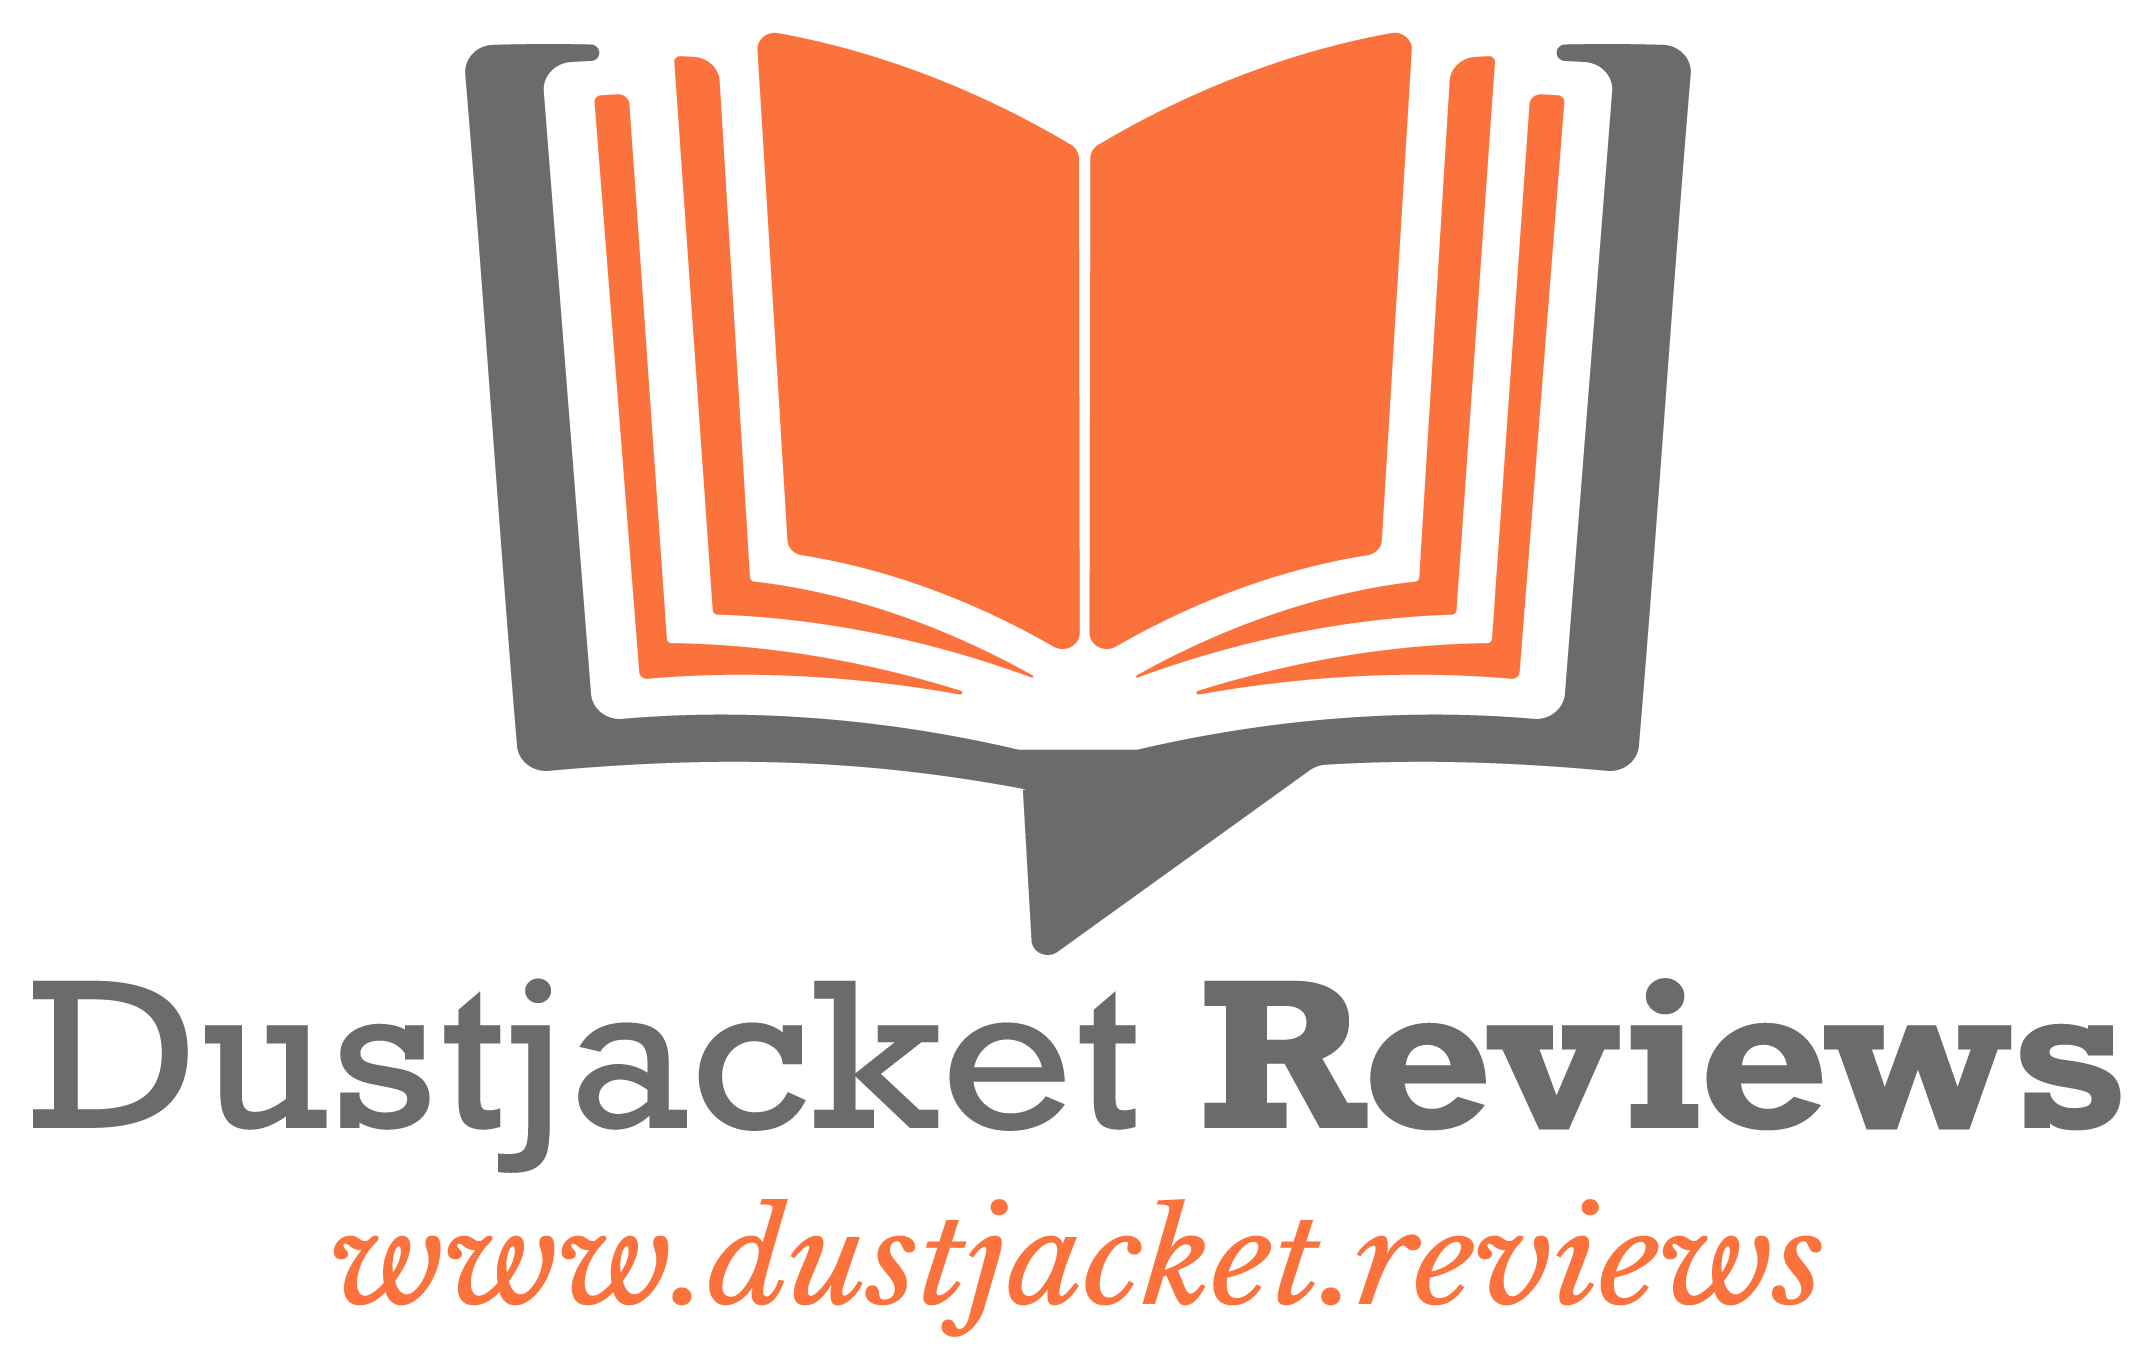 Dustjacket Reviews